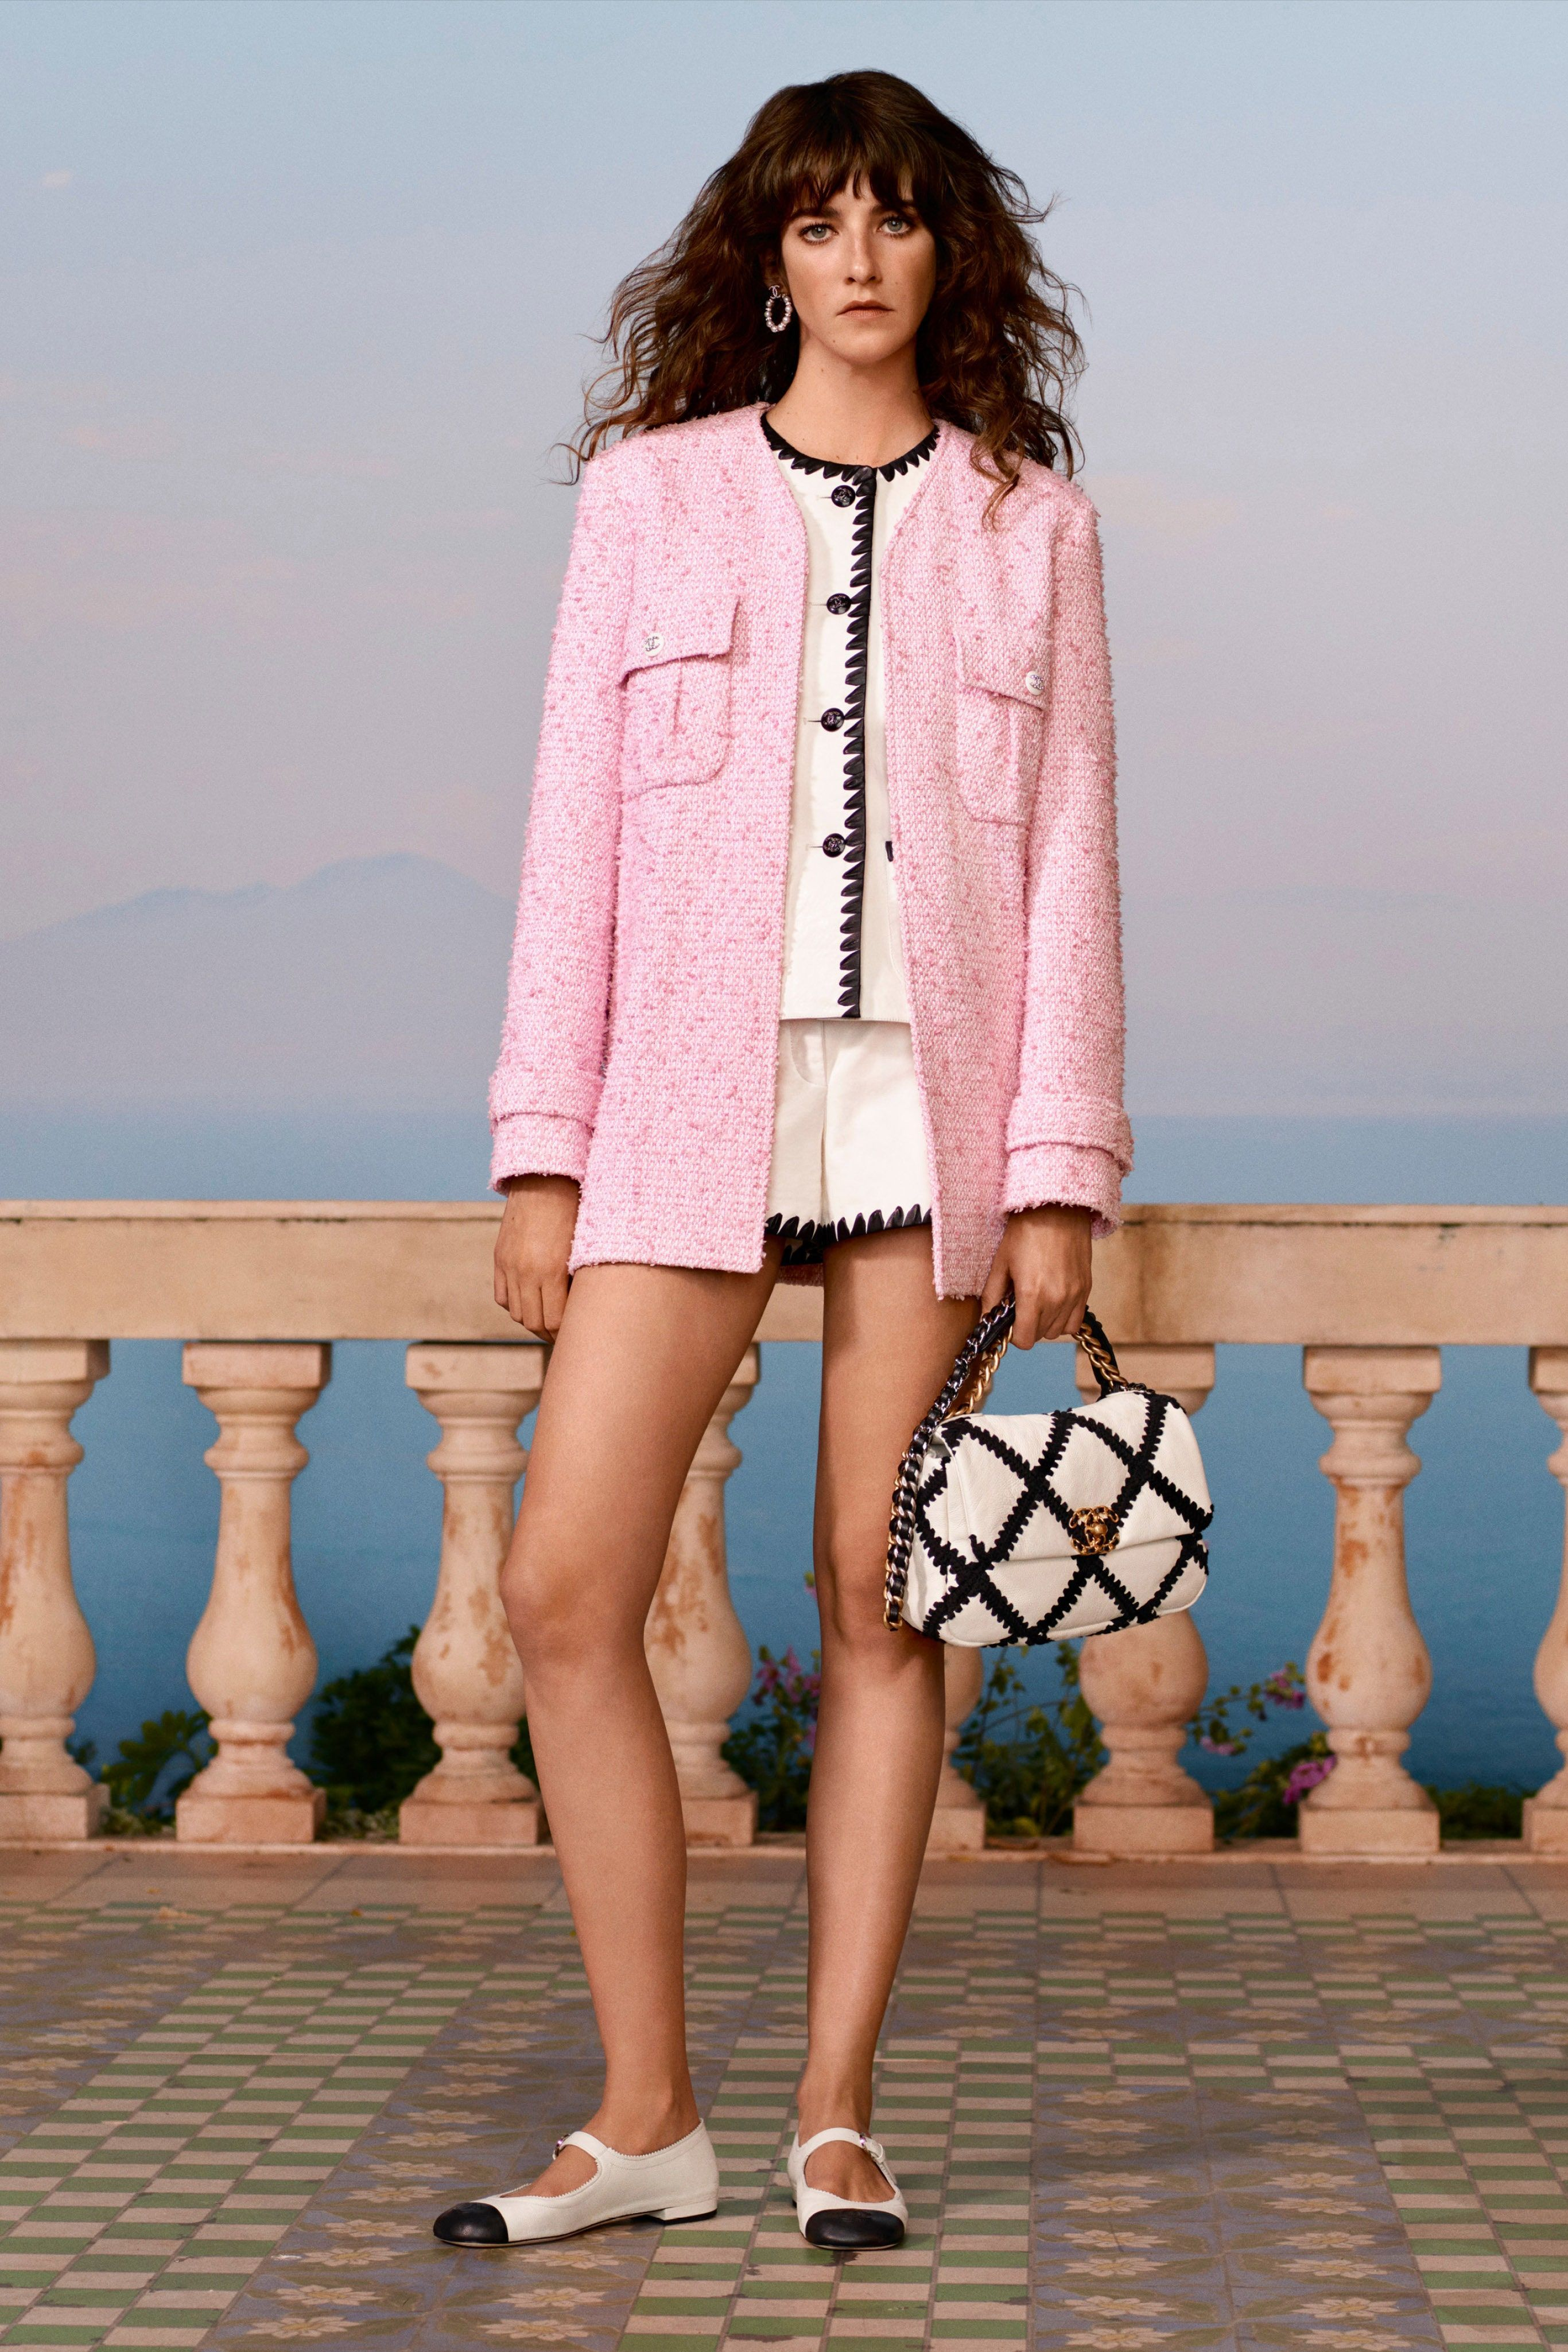 Chanel Resort 2021: Minimalist Suit with Shorts and Pink Coat | Clothia in 2020 | Chanel cruise, Chanel resort, Fashion